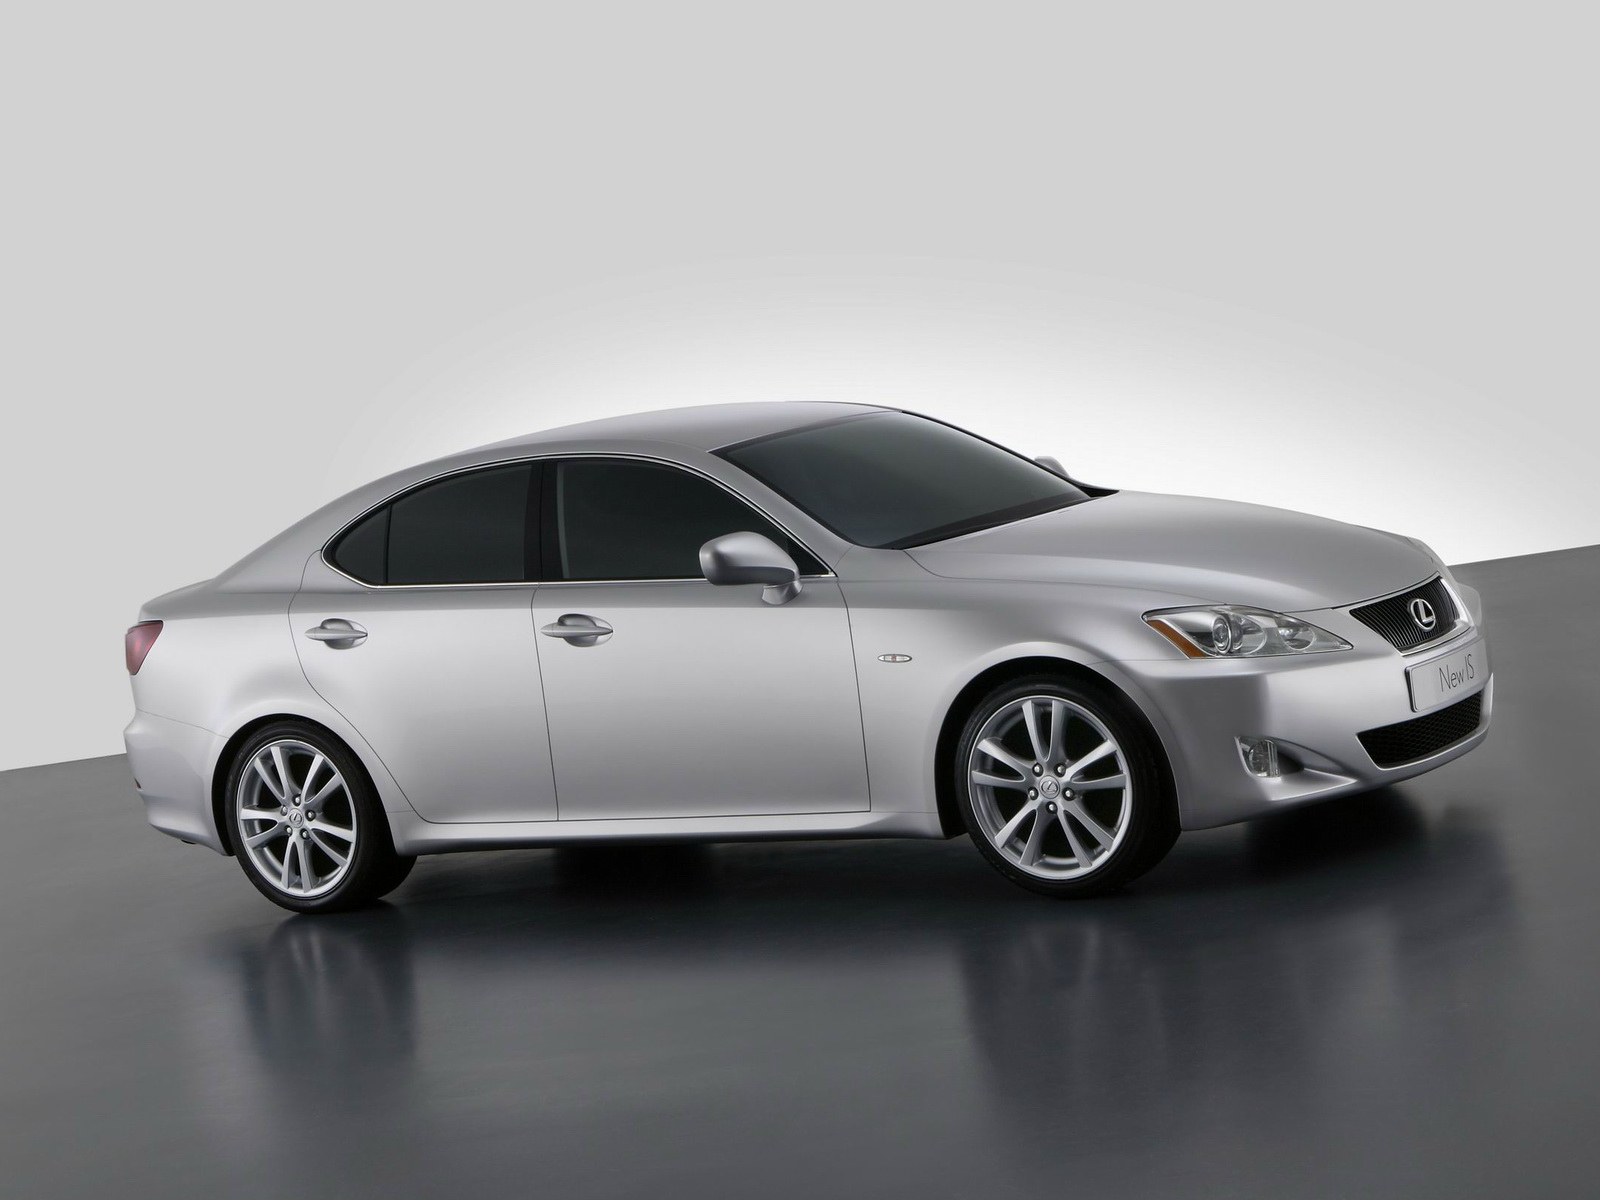 Lexus IS 250 photo 21716